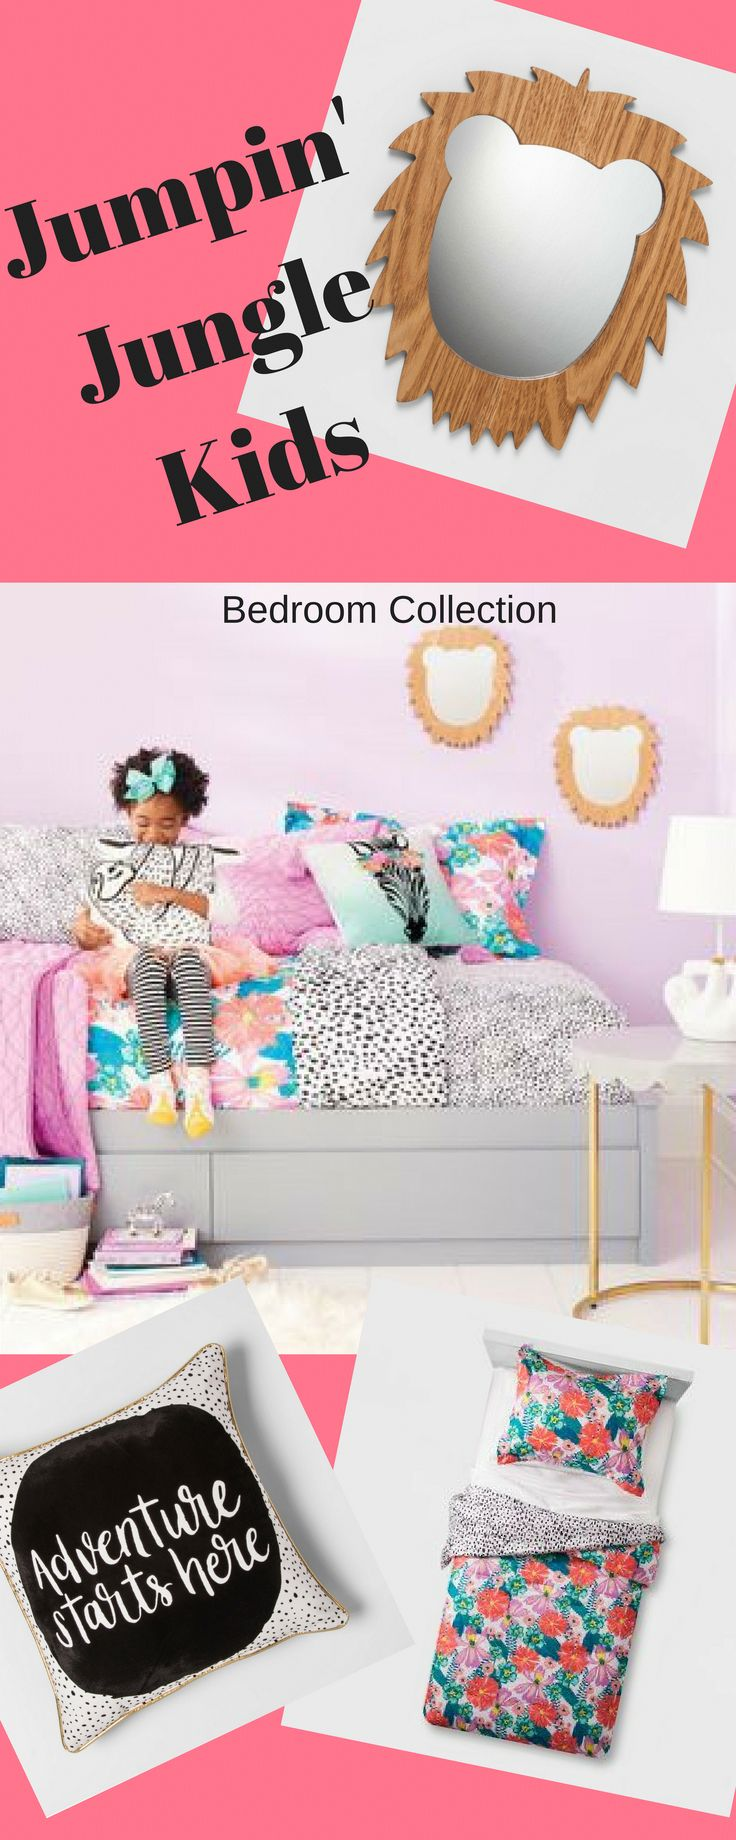 Jumpin' Jungles Kids' Bedroom Collection - Pillowfort™️ | Our latest Pillowfort collections have lots of fun finds to up the imagination for kid spaces that are all their own, from fun pillows to a canopy and more. Spotted sheets, tropical flower prints, lion mirrors and-not to miss-a sloth pillow. This kids' bedroom collection is a total jungle, and it couldn't get much cuter than this. #girls bedroom #jungle #ad